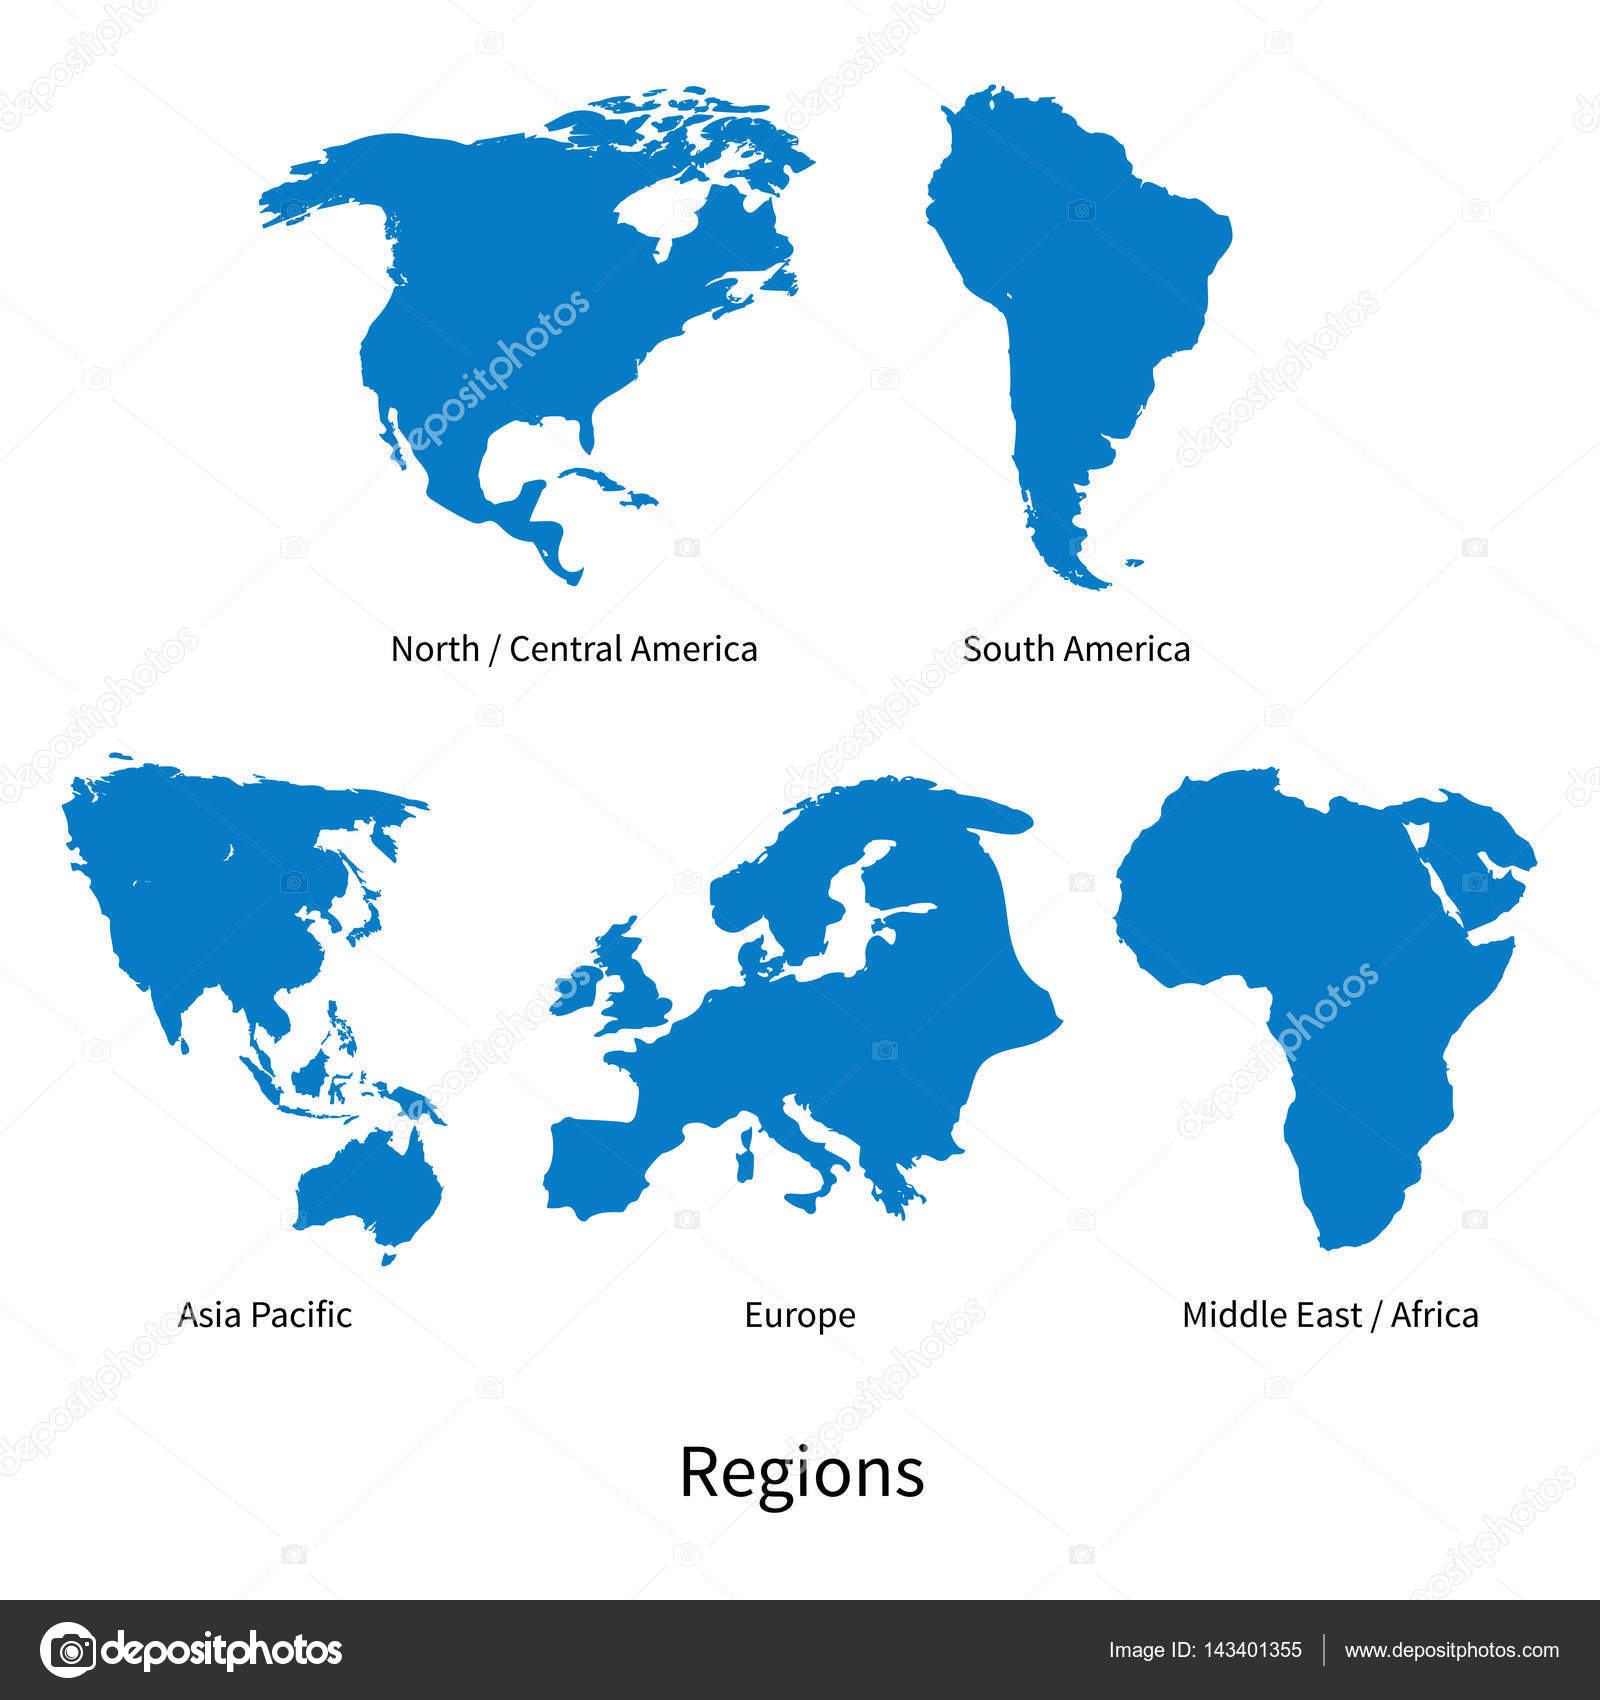 Free Vector Map Of North America.Detailed Vector Map Of North Central America Asia Pacific Europe